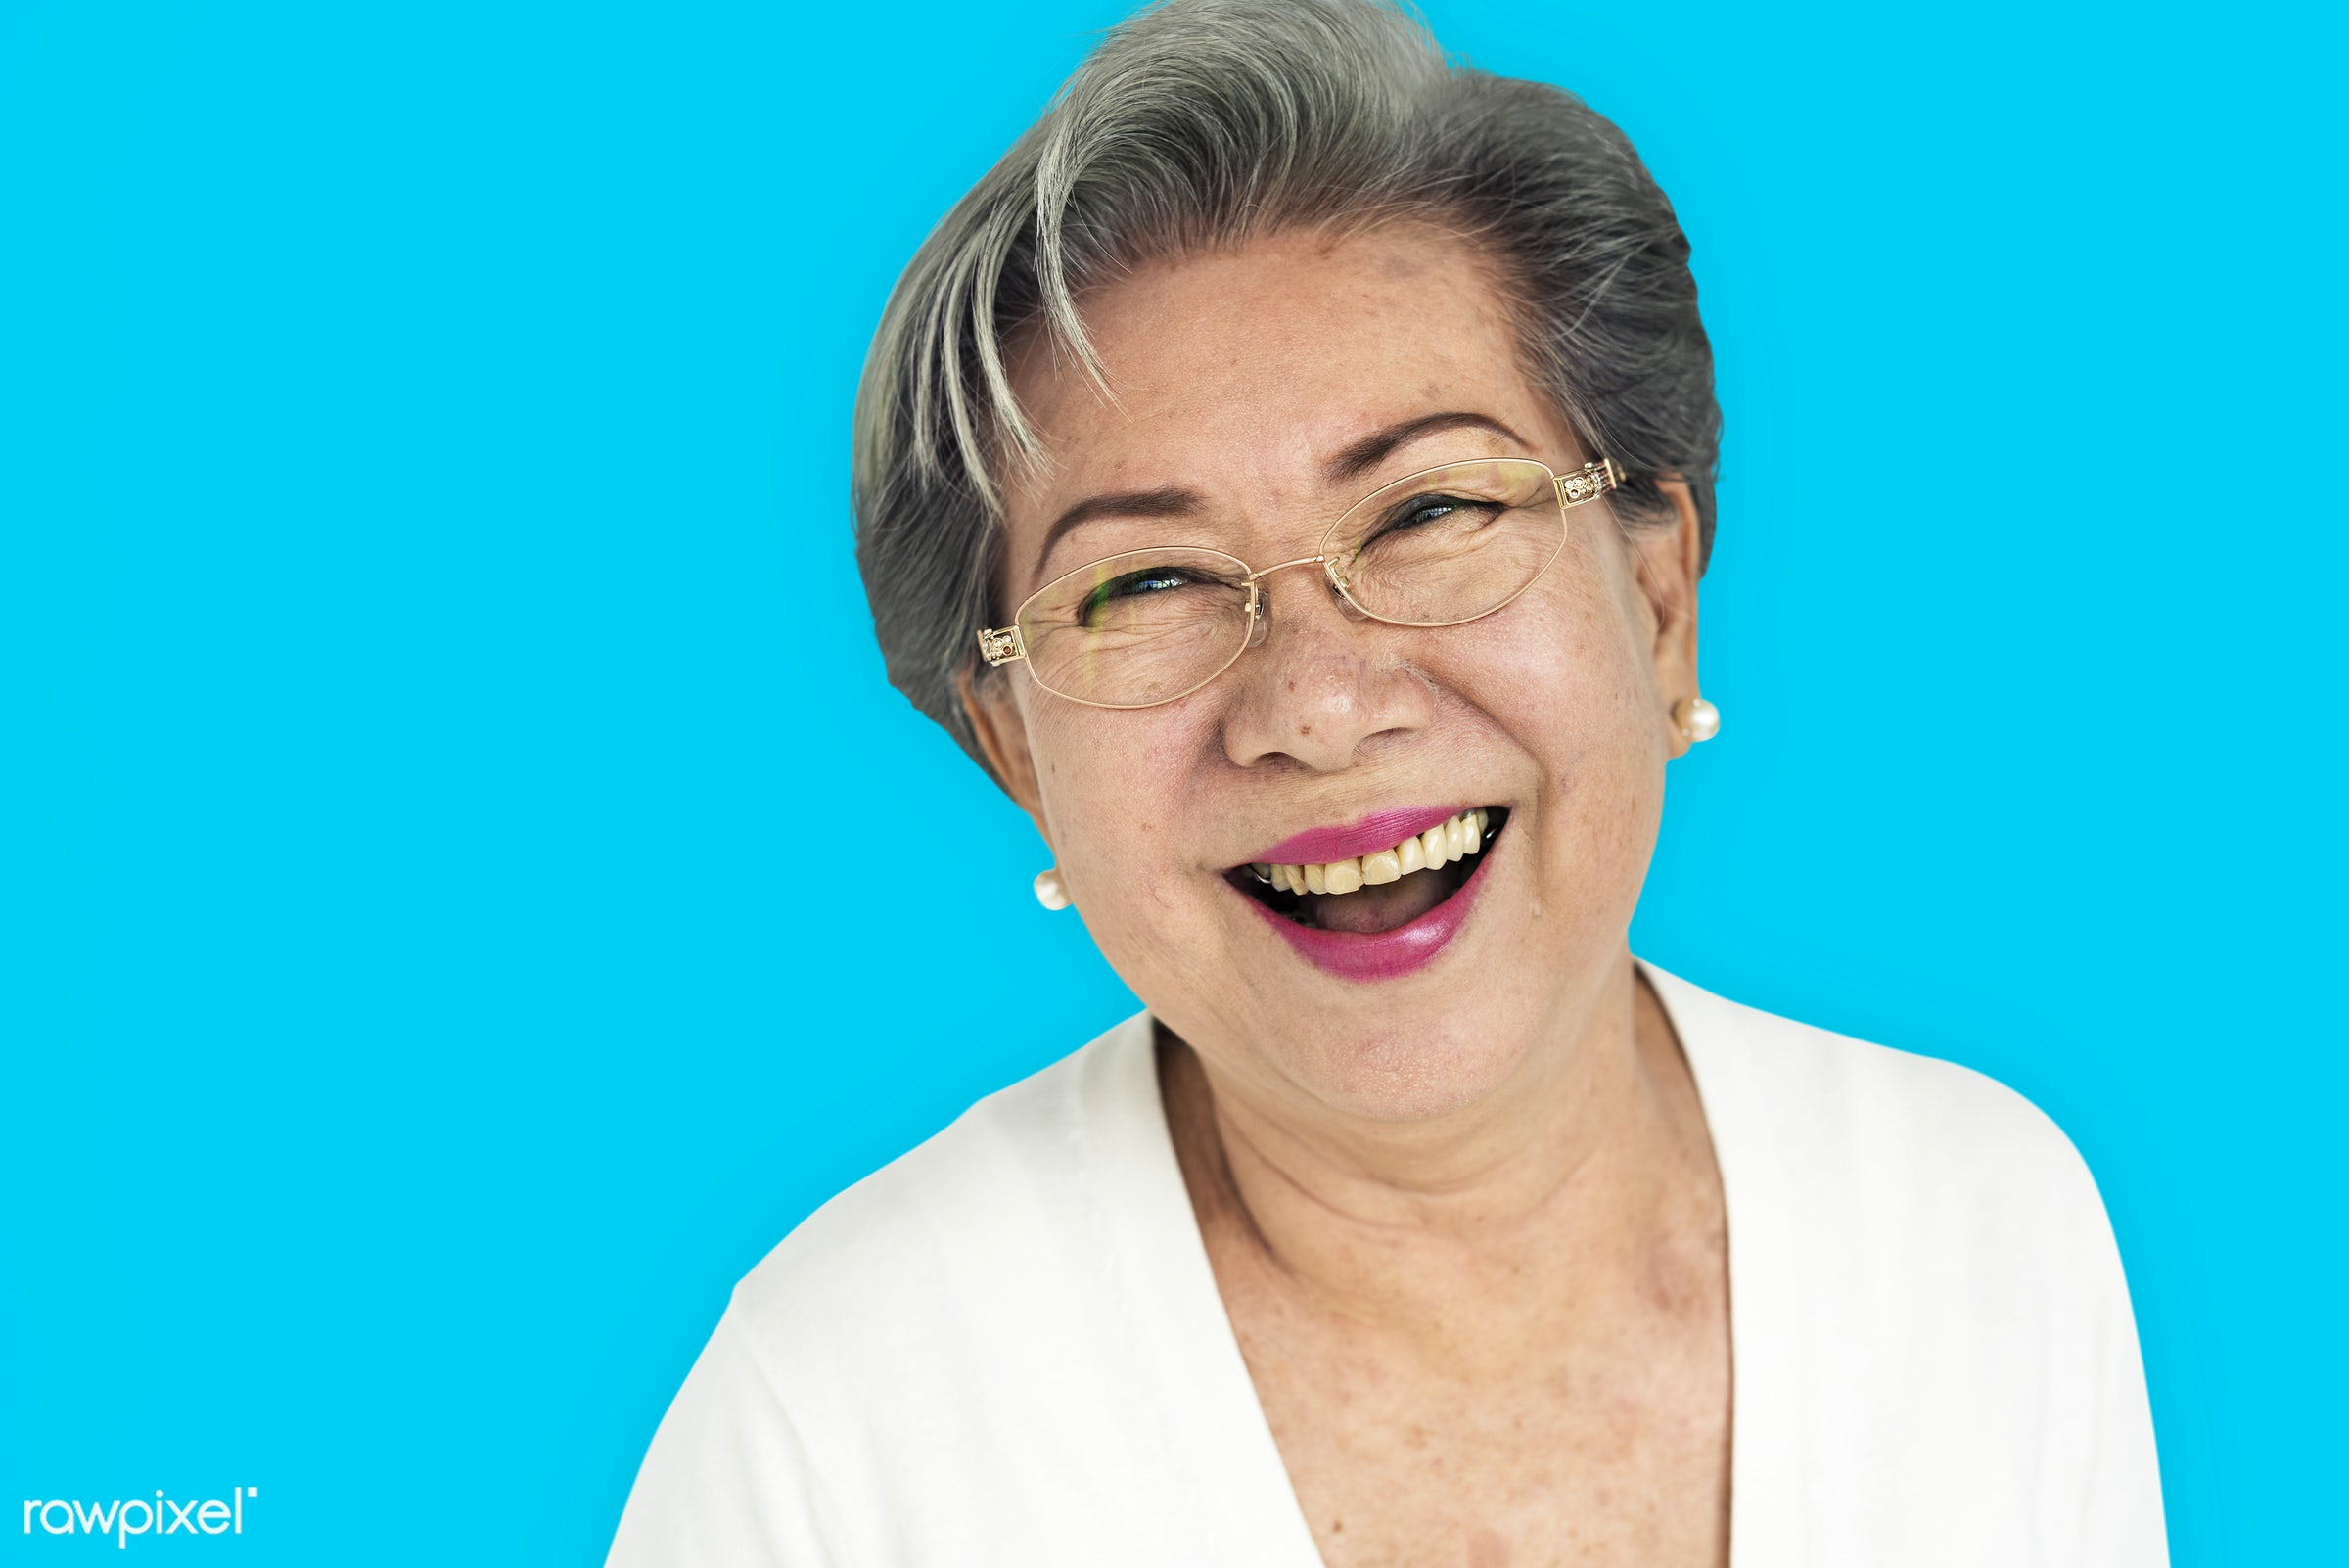 studio, expression, person, vibrant, people, asian, woman, cheerful, smiling, isolated, happiness, portrait, emotion,...